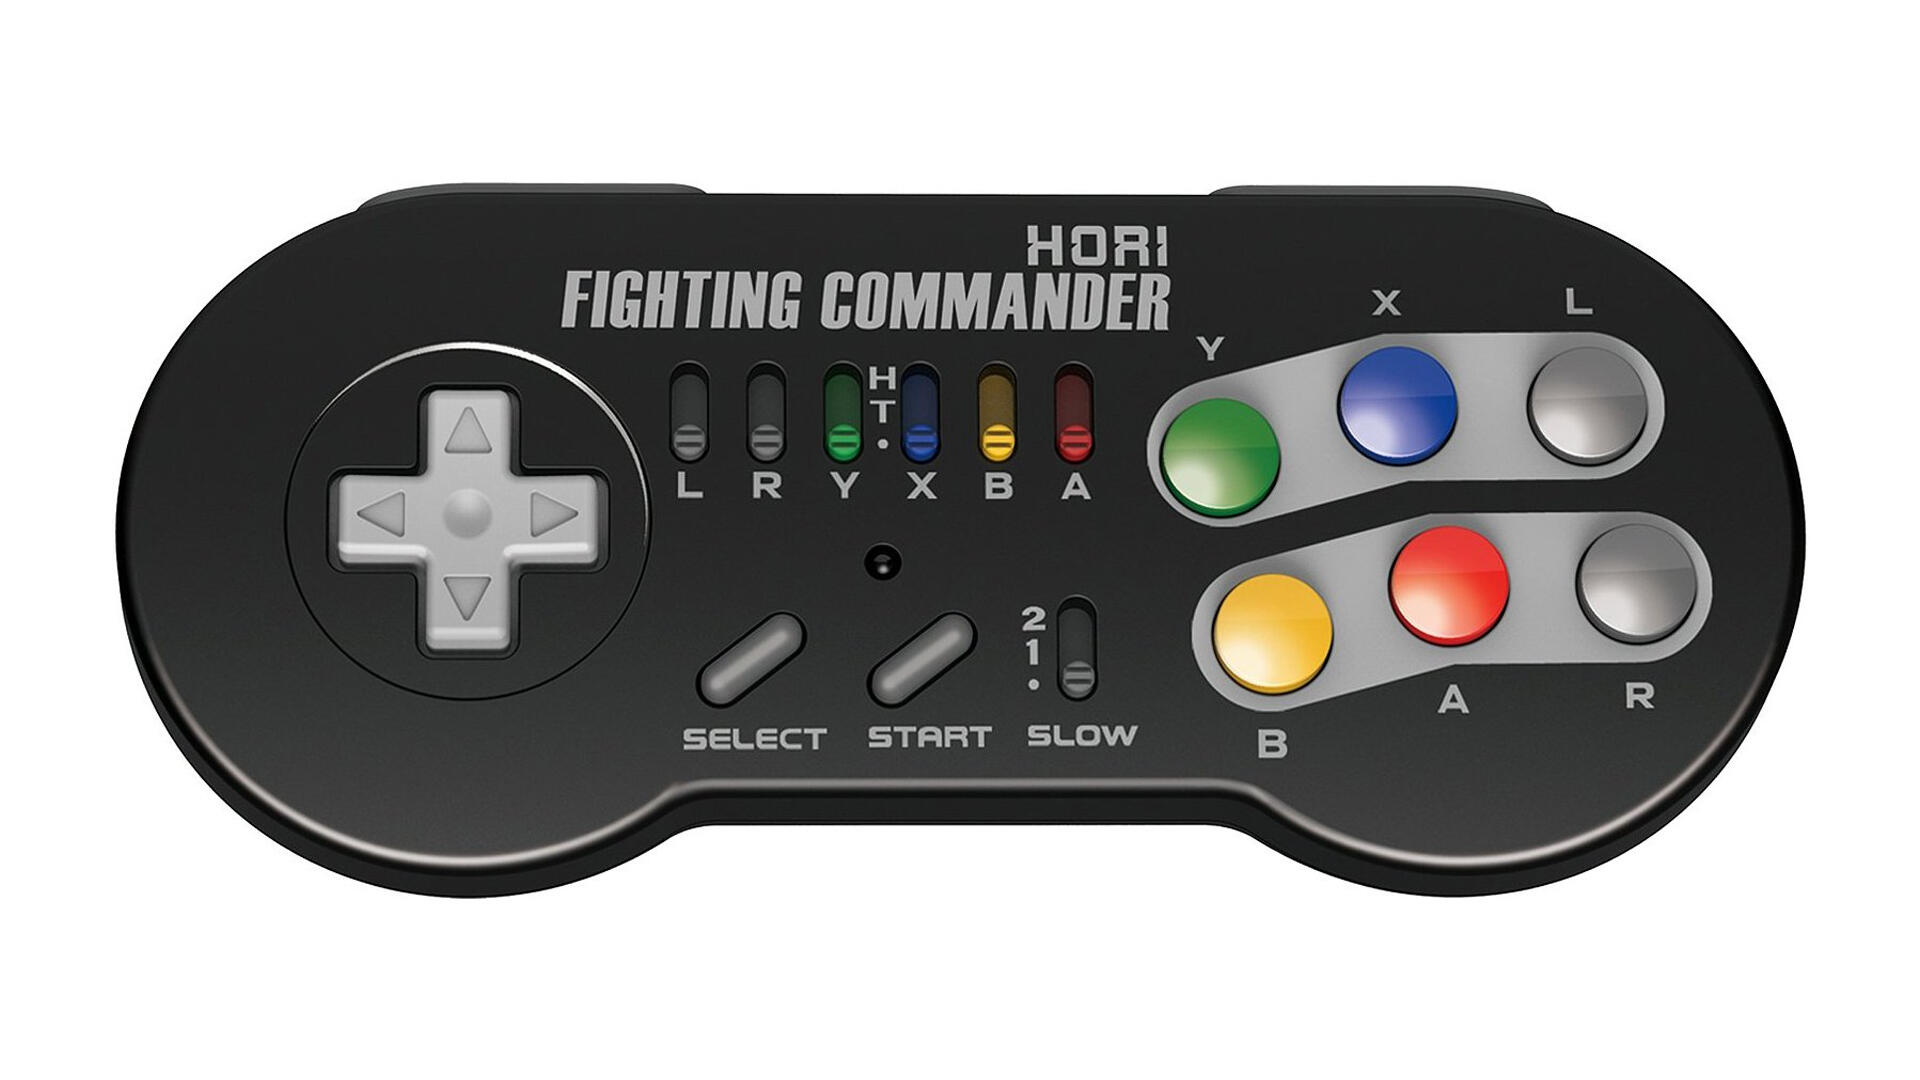 Hori's Fighting Commander Controller Is out This Week, Available to